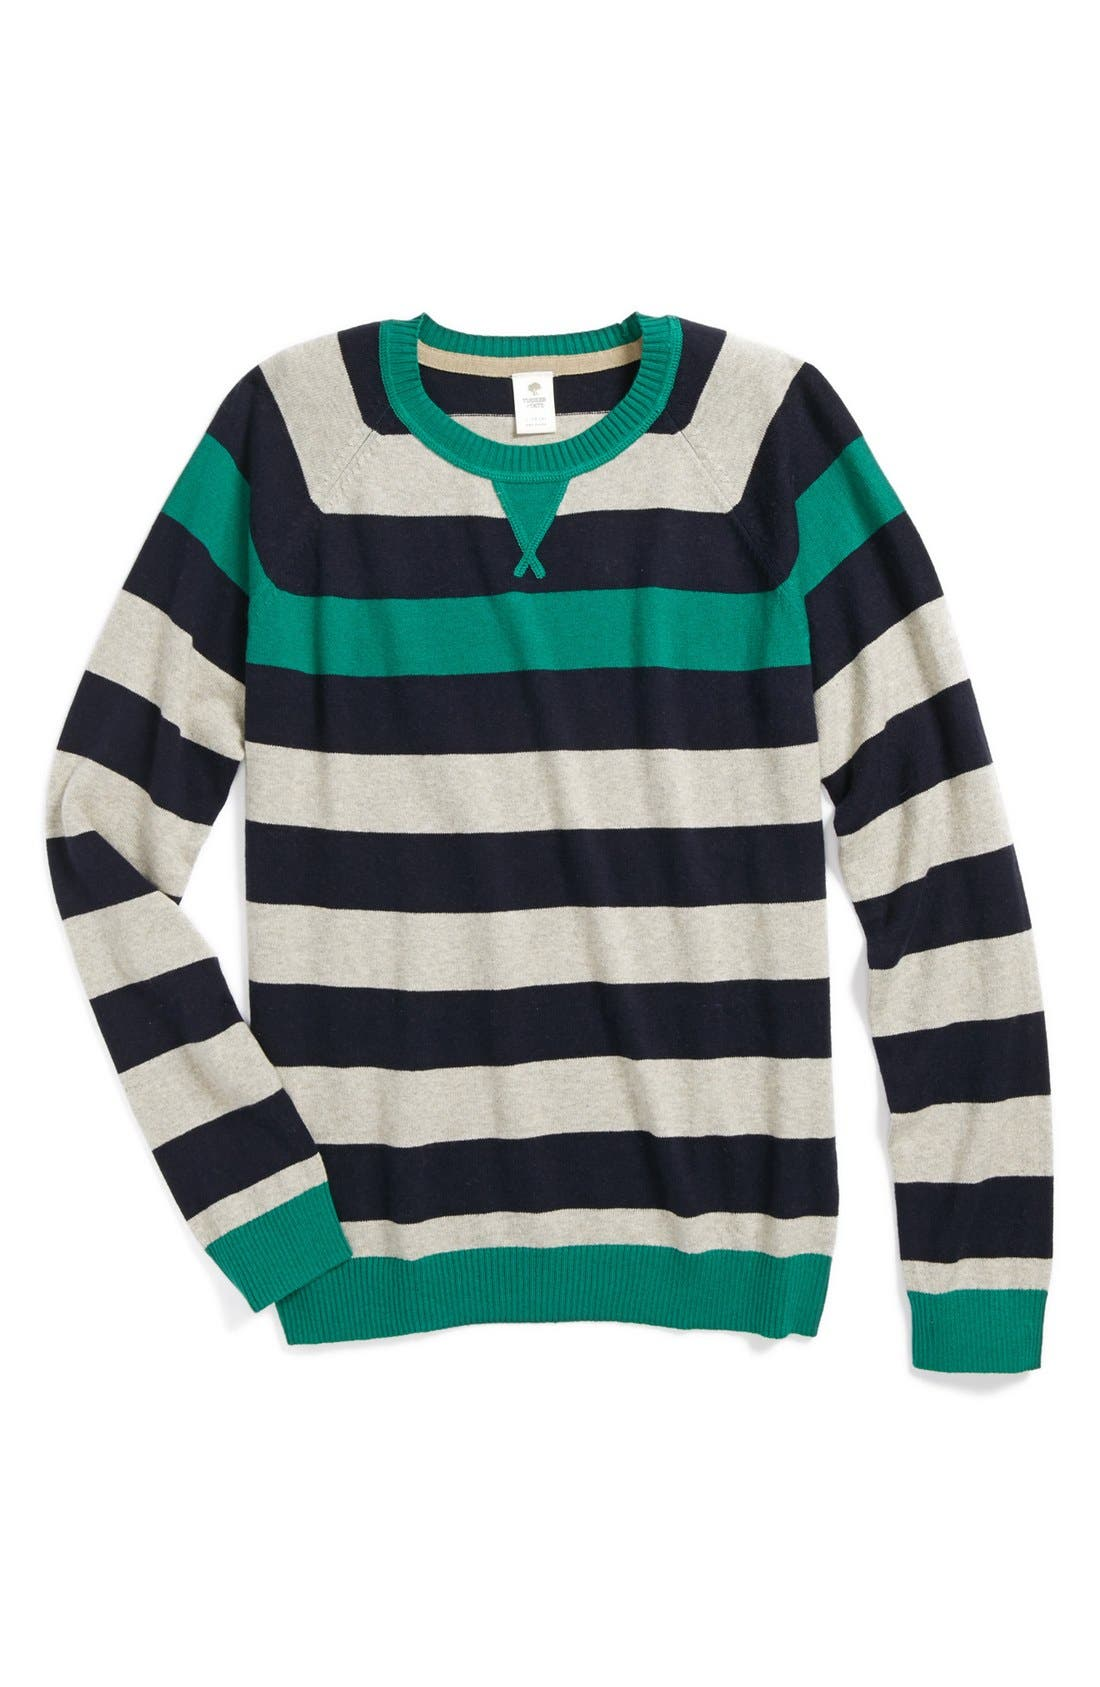 Alternate Image 1 Selected - Tucker + Tate 'Capital Street' Sweater (Little Boys)